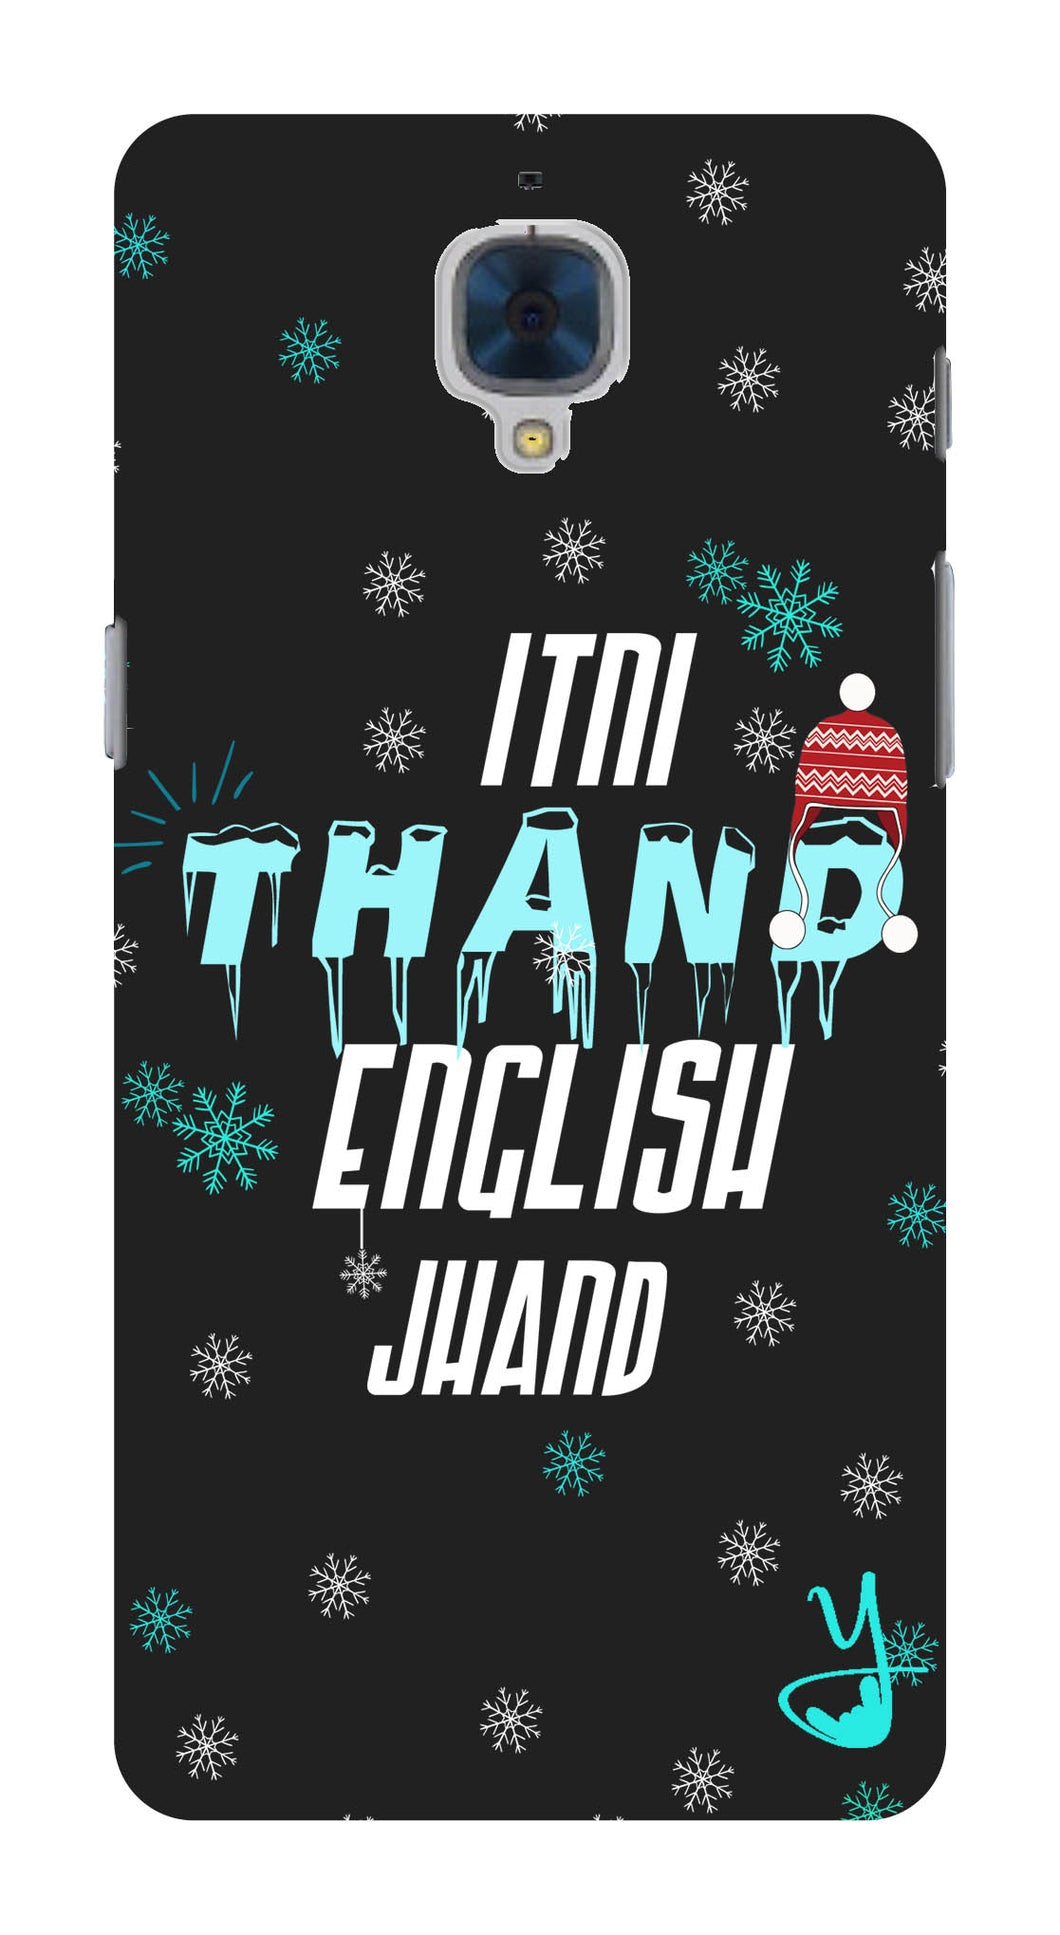 Itni Thand edition for One plus 3